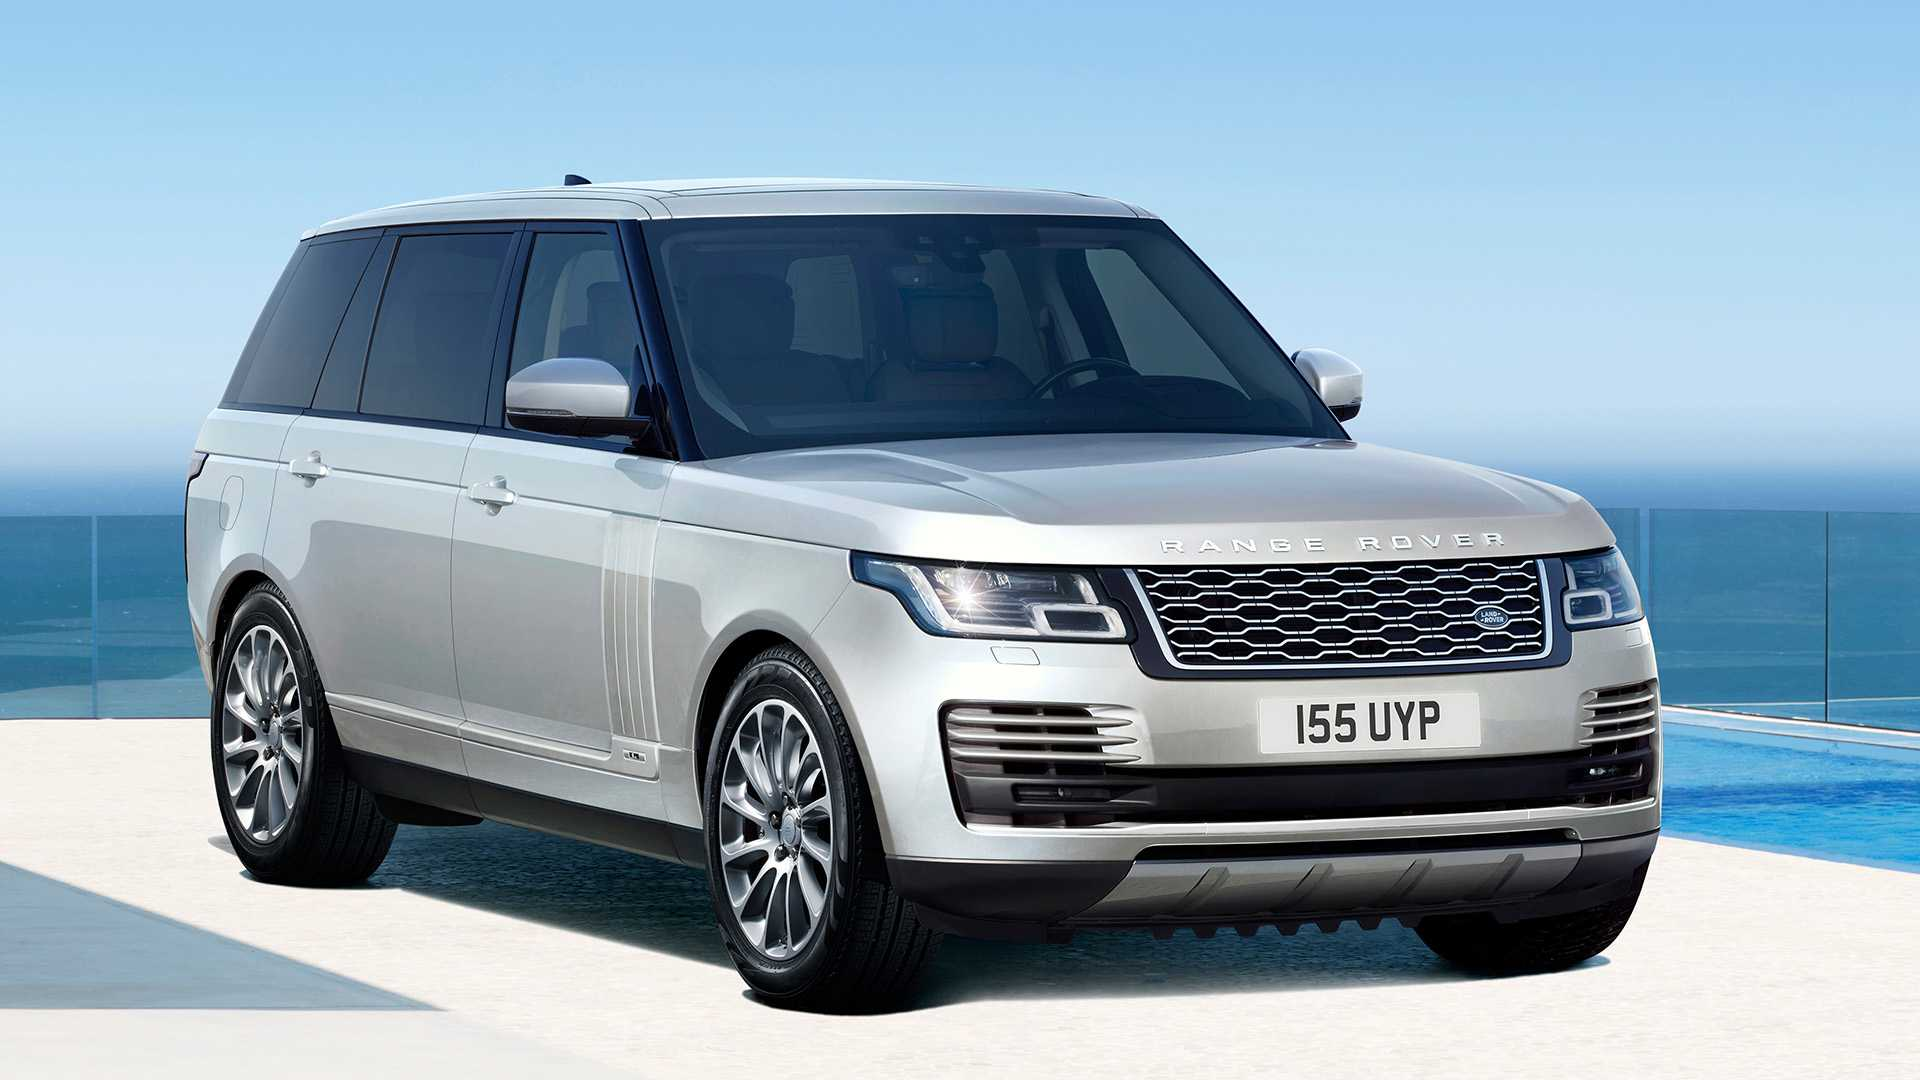 Things you can't overlook about Range Rover maintenance